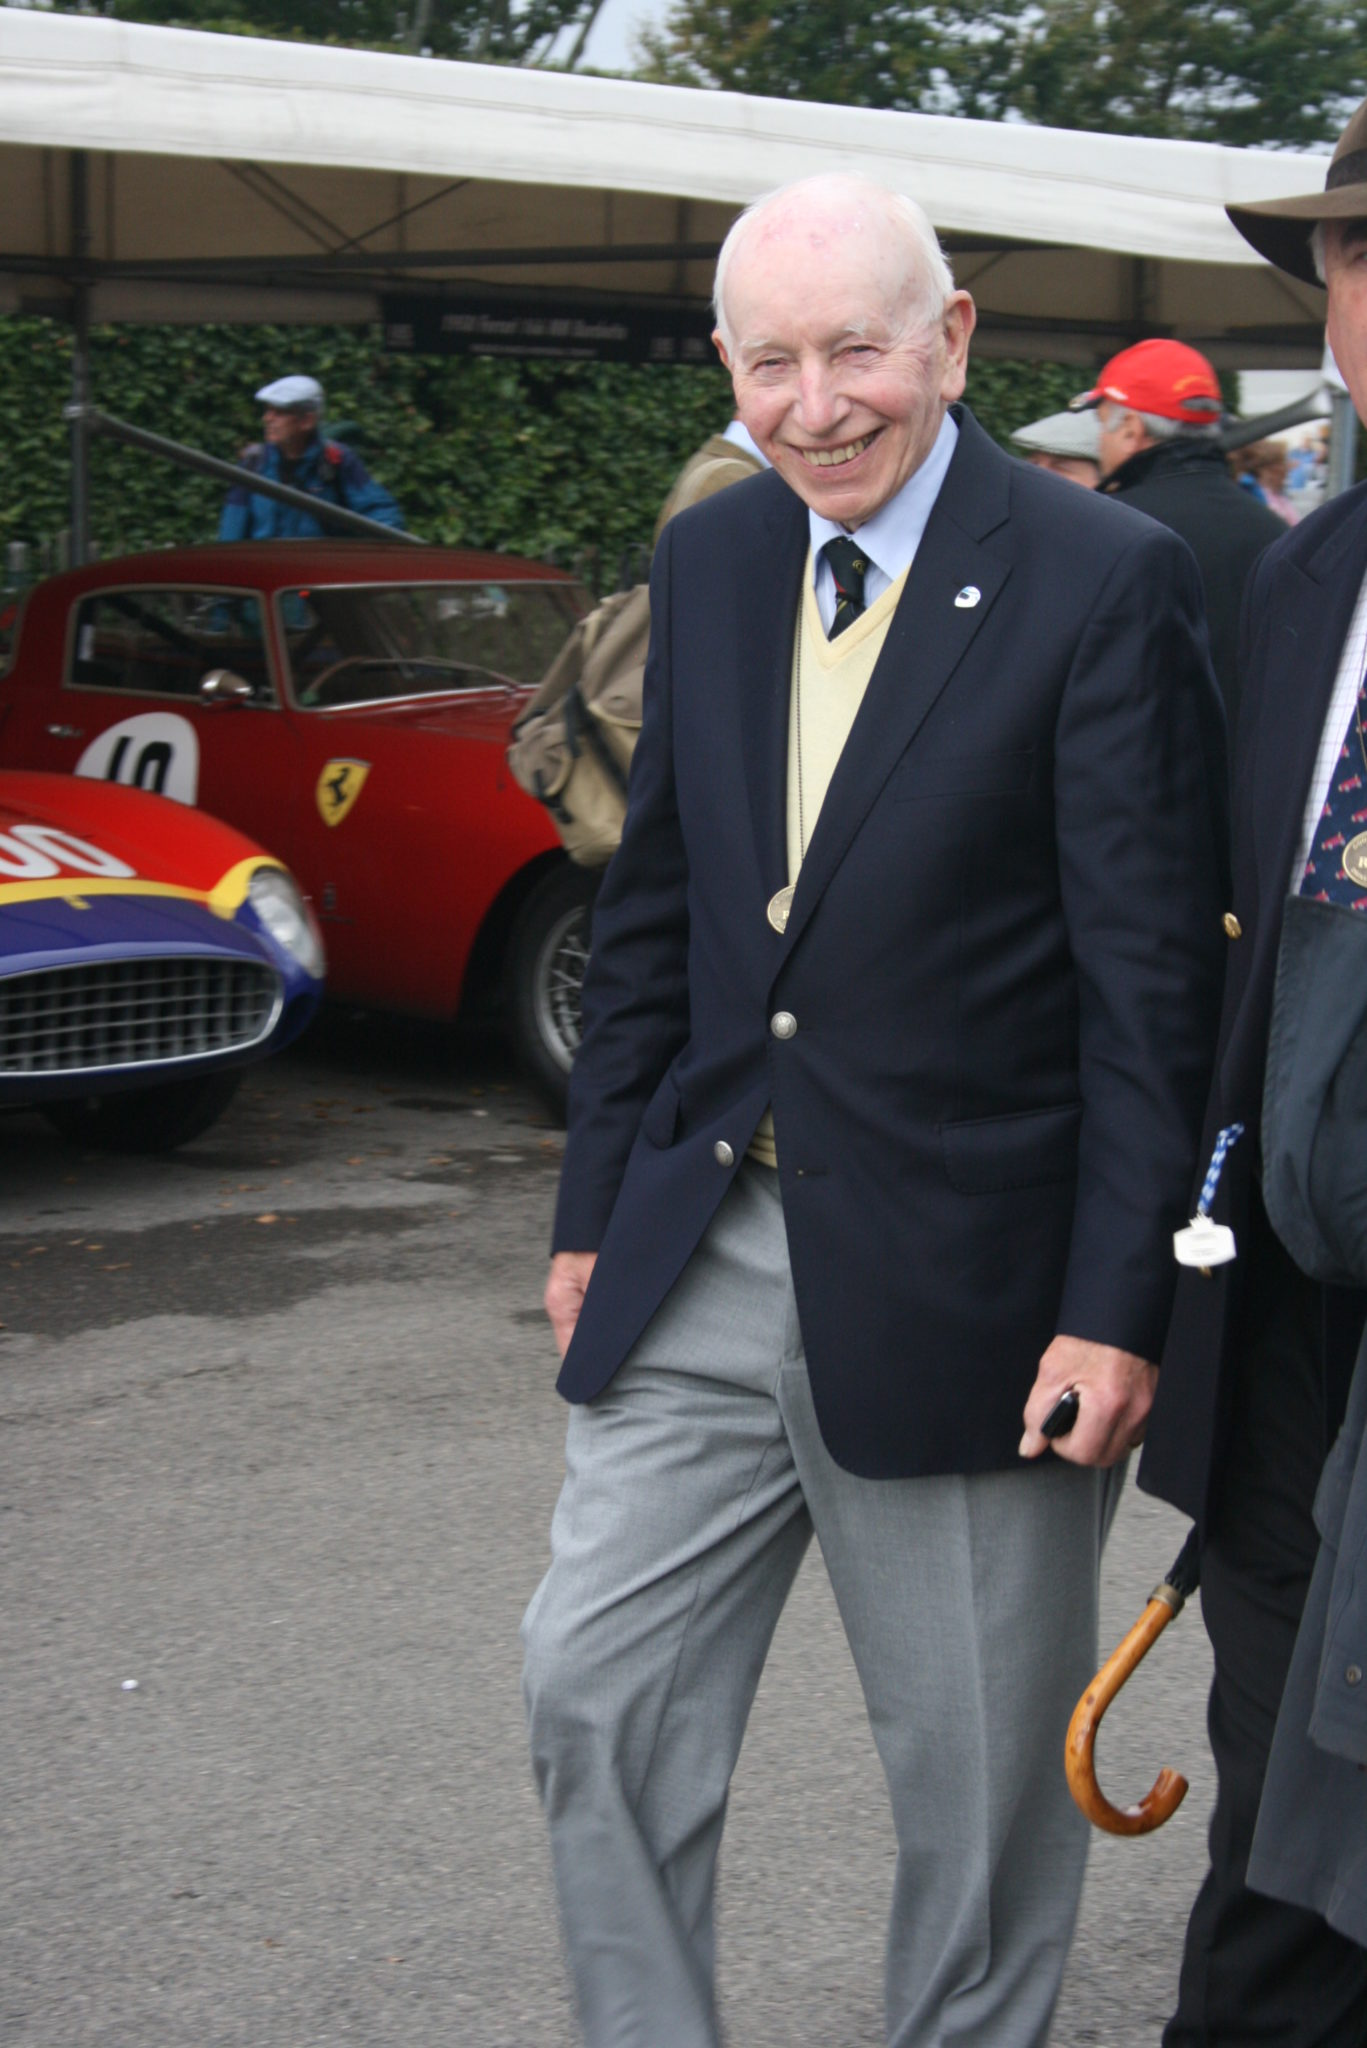 John Surtees image credit Supermac1961 on flickr